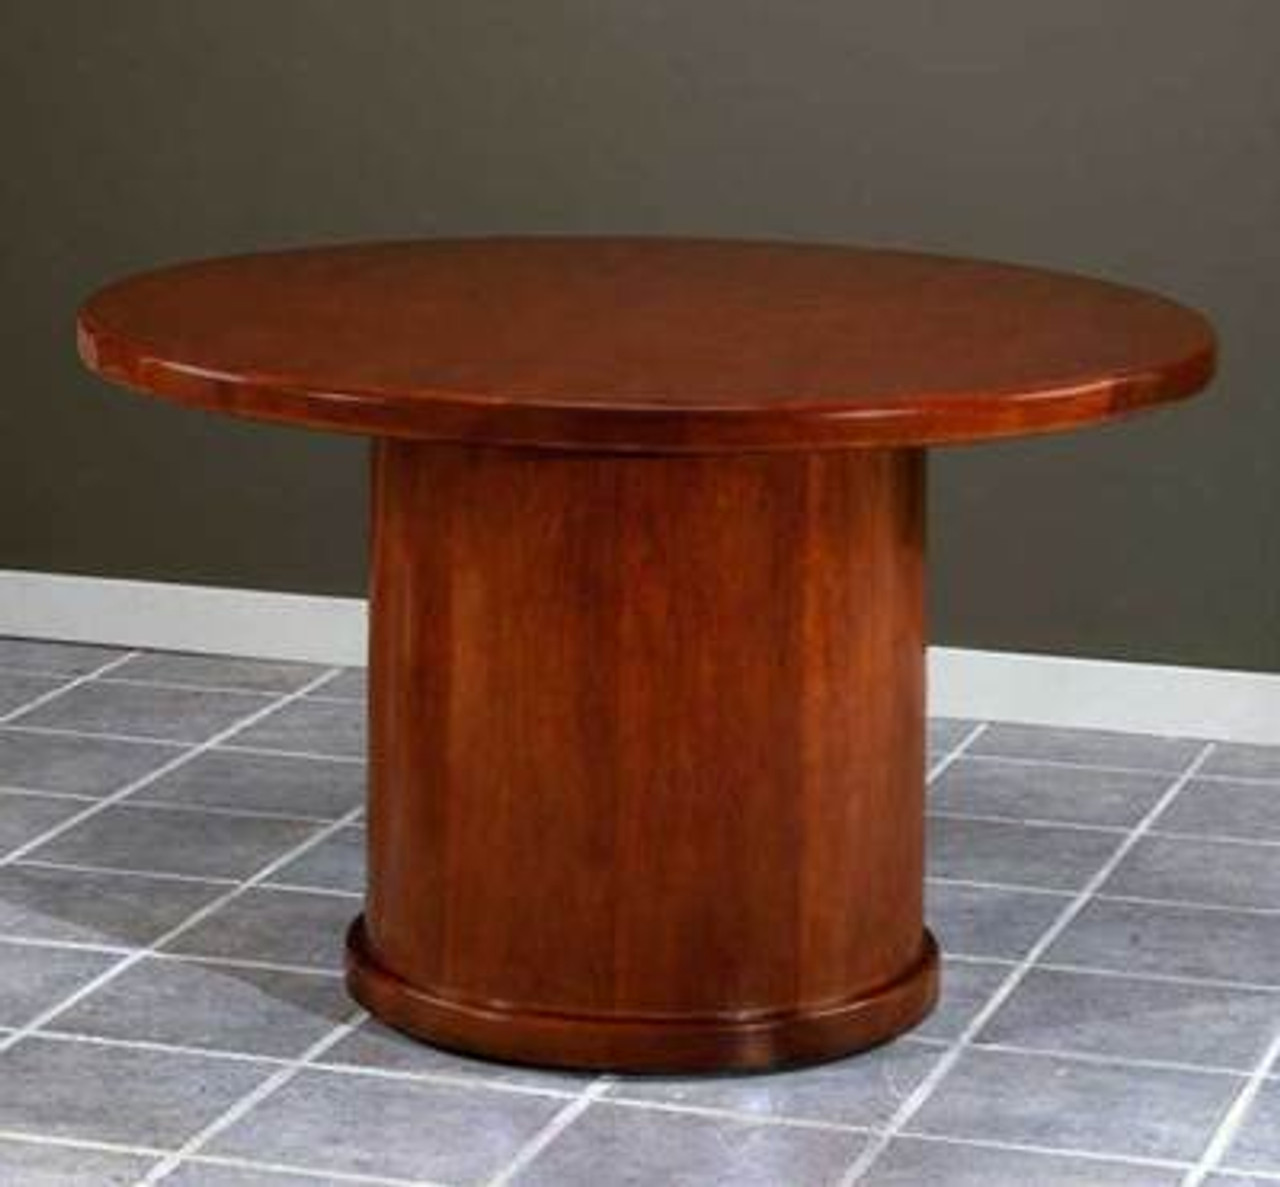 NEW 4' FEET WOOD ROUND CONFERENCE TABLE, #CH-RUB-C6